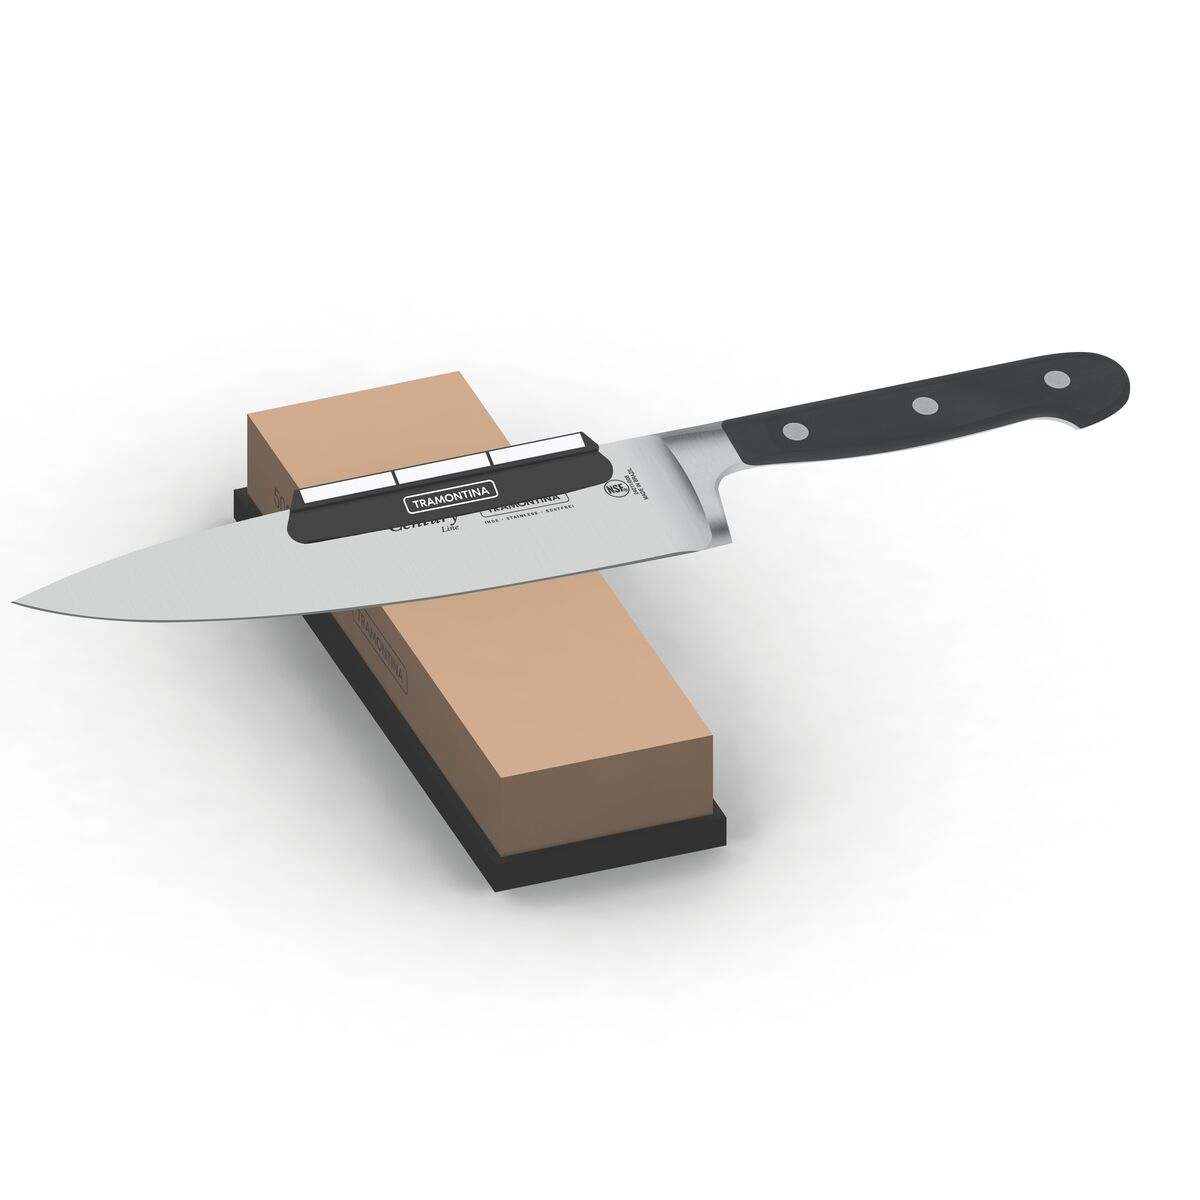 knife sharpening angle guide tool